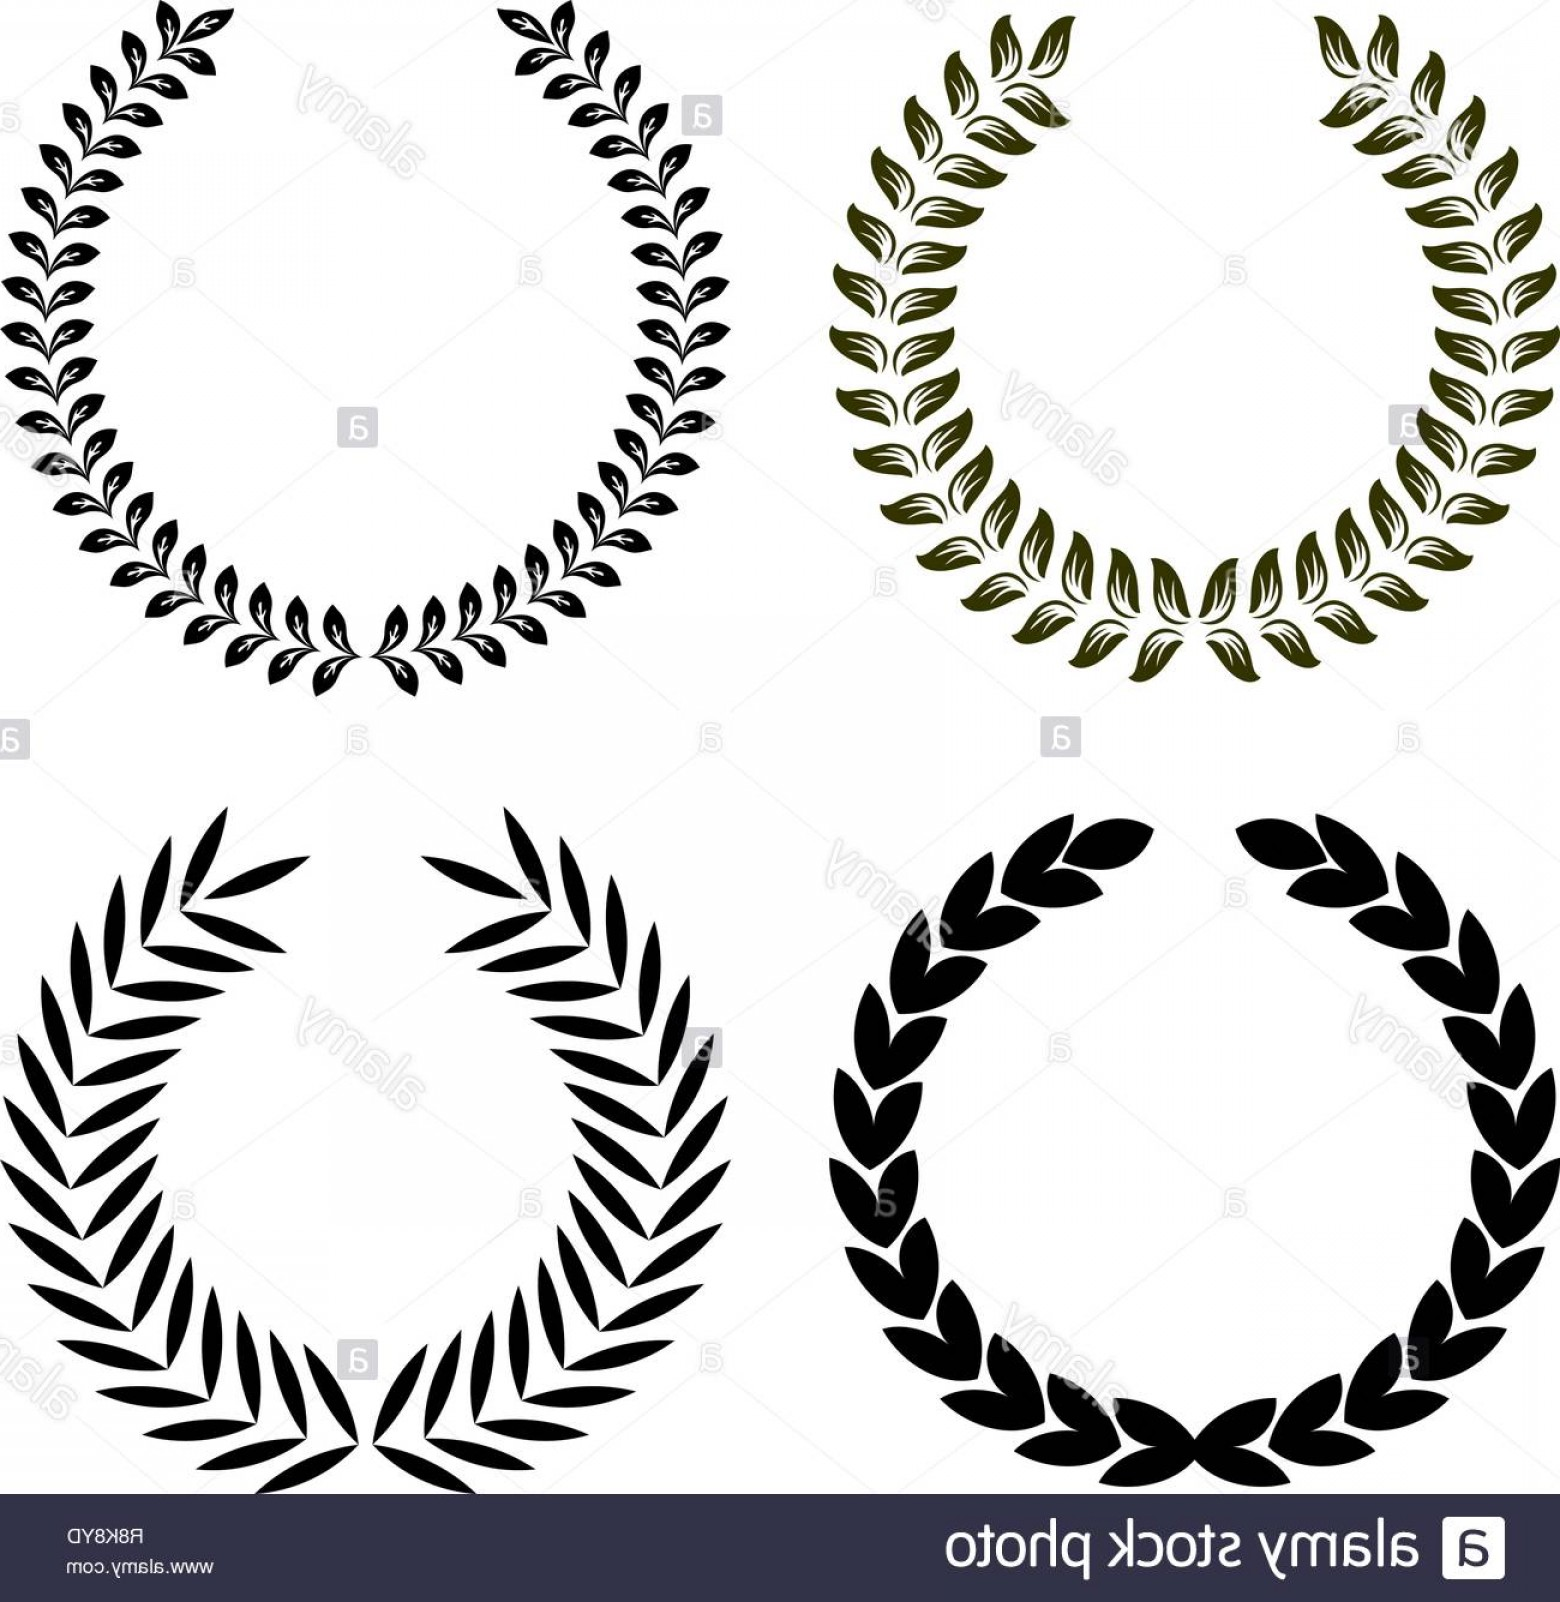 Floral Laurel Wreath Vector: Set Of Vector Isolated Floral Laurel And Olive Wreaths Image